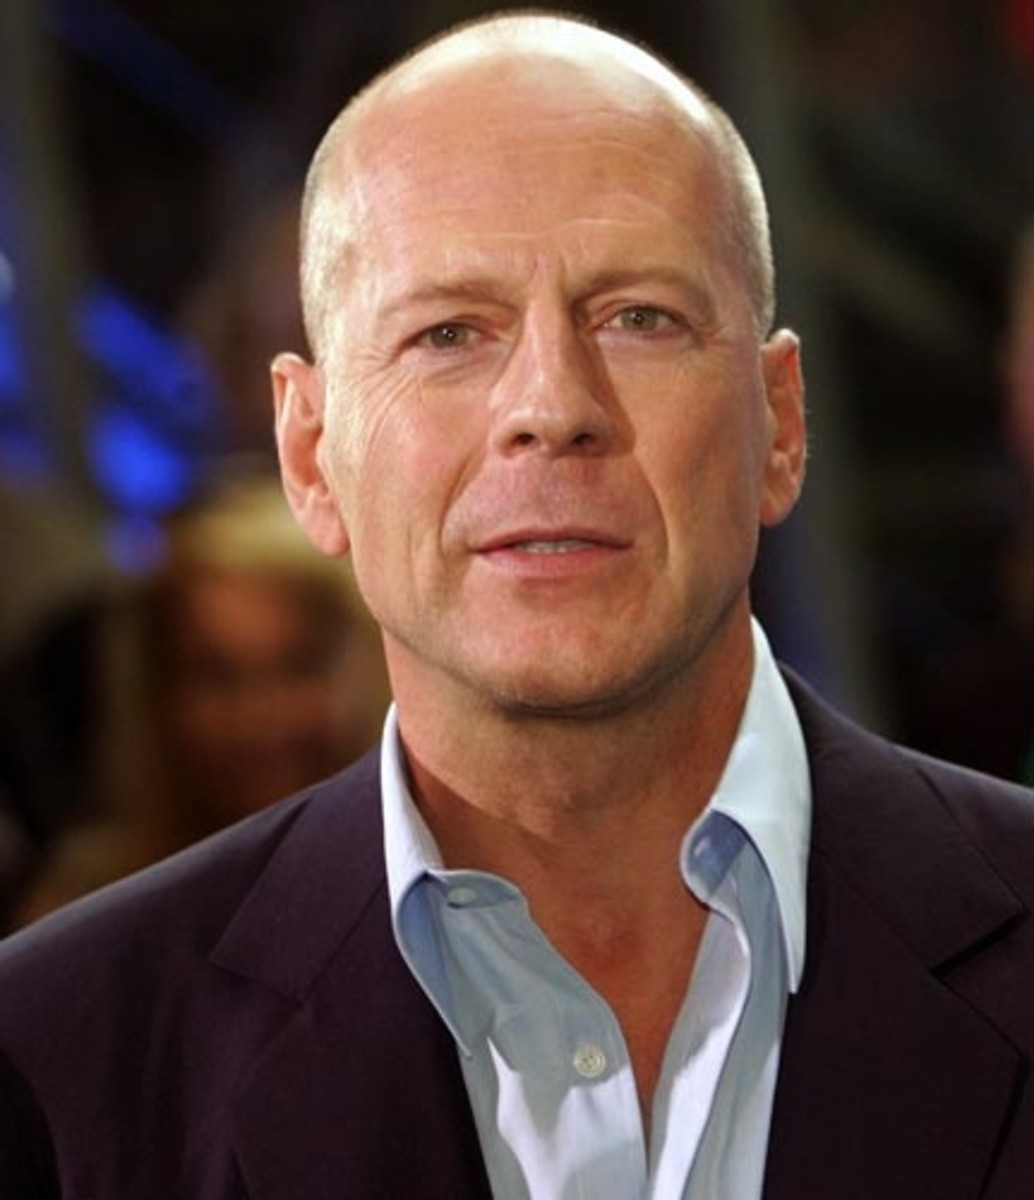 Bruce Willis, 58, wears his hair really really really short.  If you look closely, you can see the stubble.  Bald is sexy.  Minimal maintenance required. - 2013 Hairstyles for Men Short Medium Long Hair Styles Haircuts, by Rosie2010